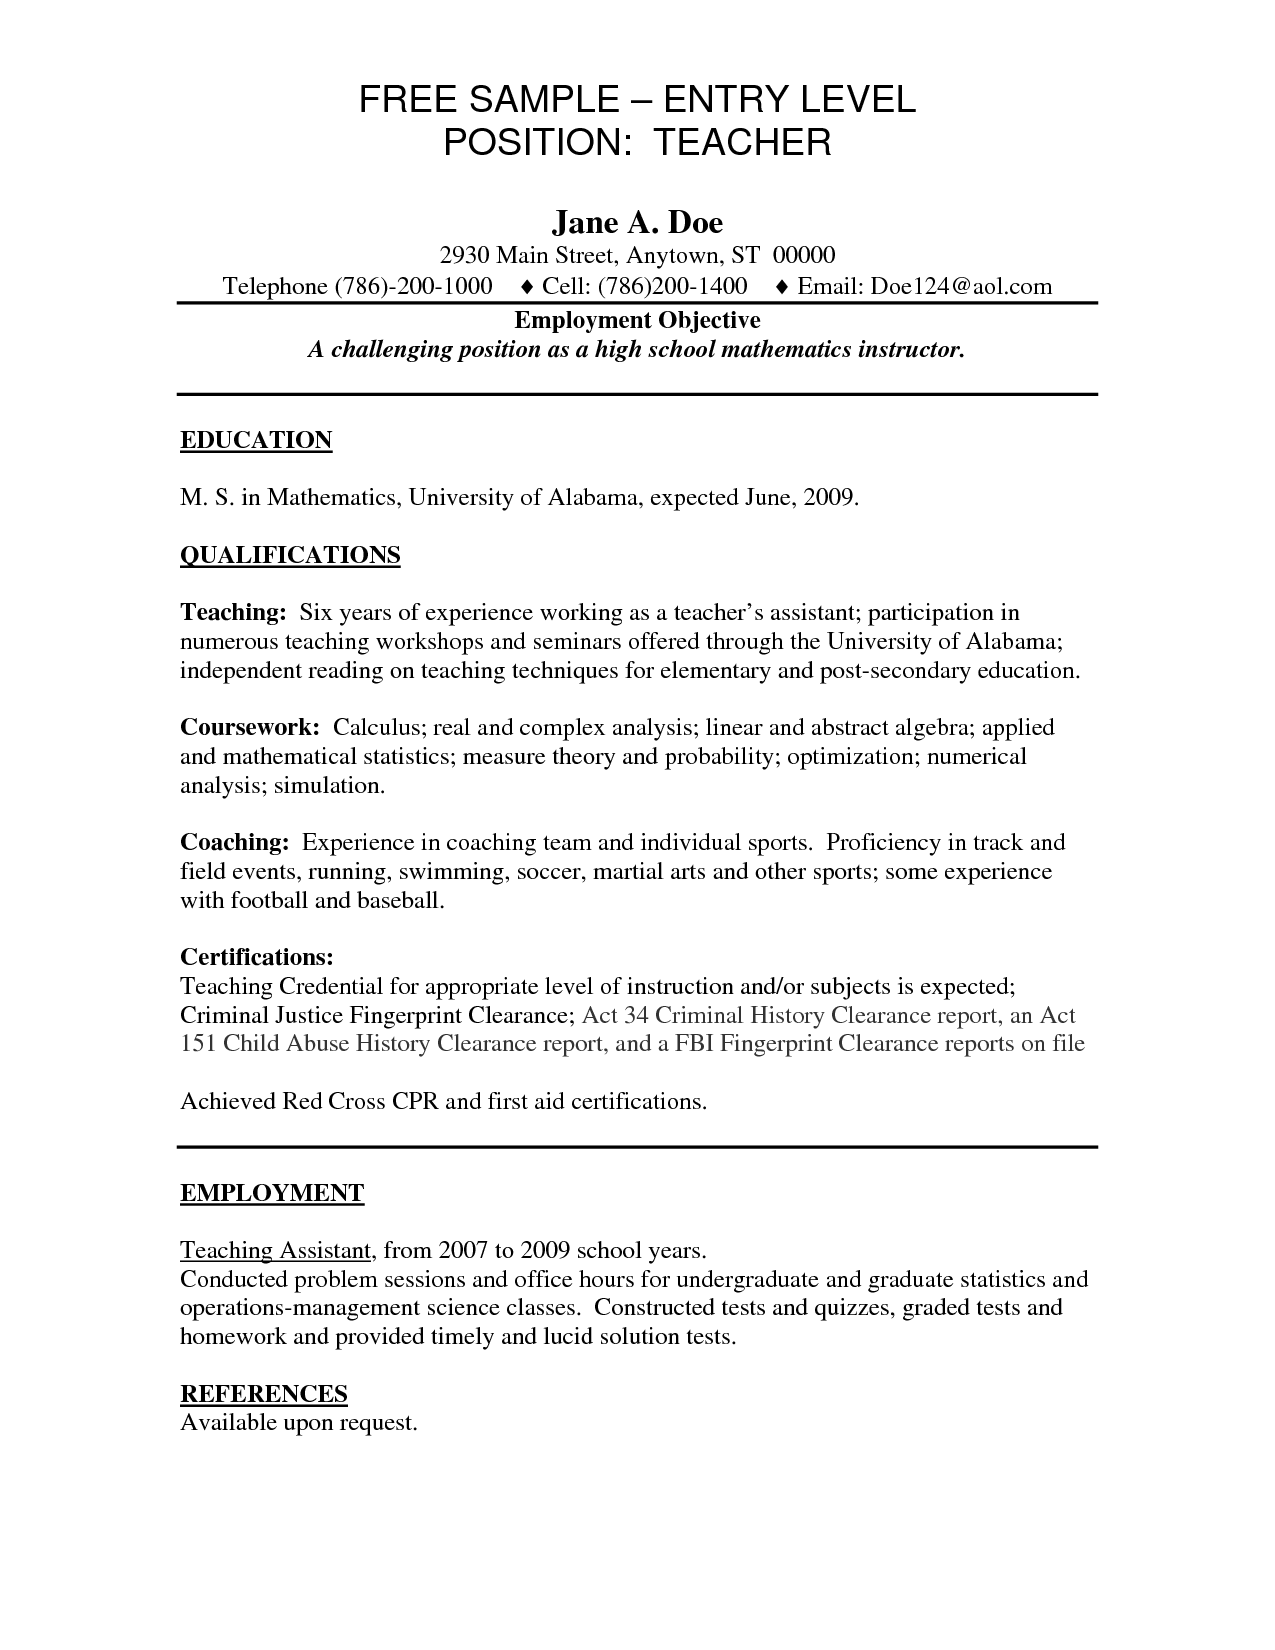 Resume Samples Entry Level Substitute Teacher Cover Letter Sample Lawteched  Template Job Experience Sle Student Resumes And Templates Eleme Sales  Objective ...  Teacher Resume Format